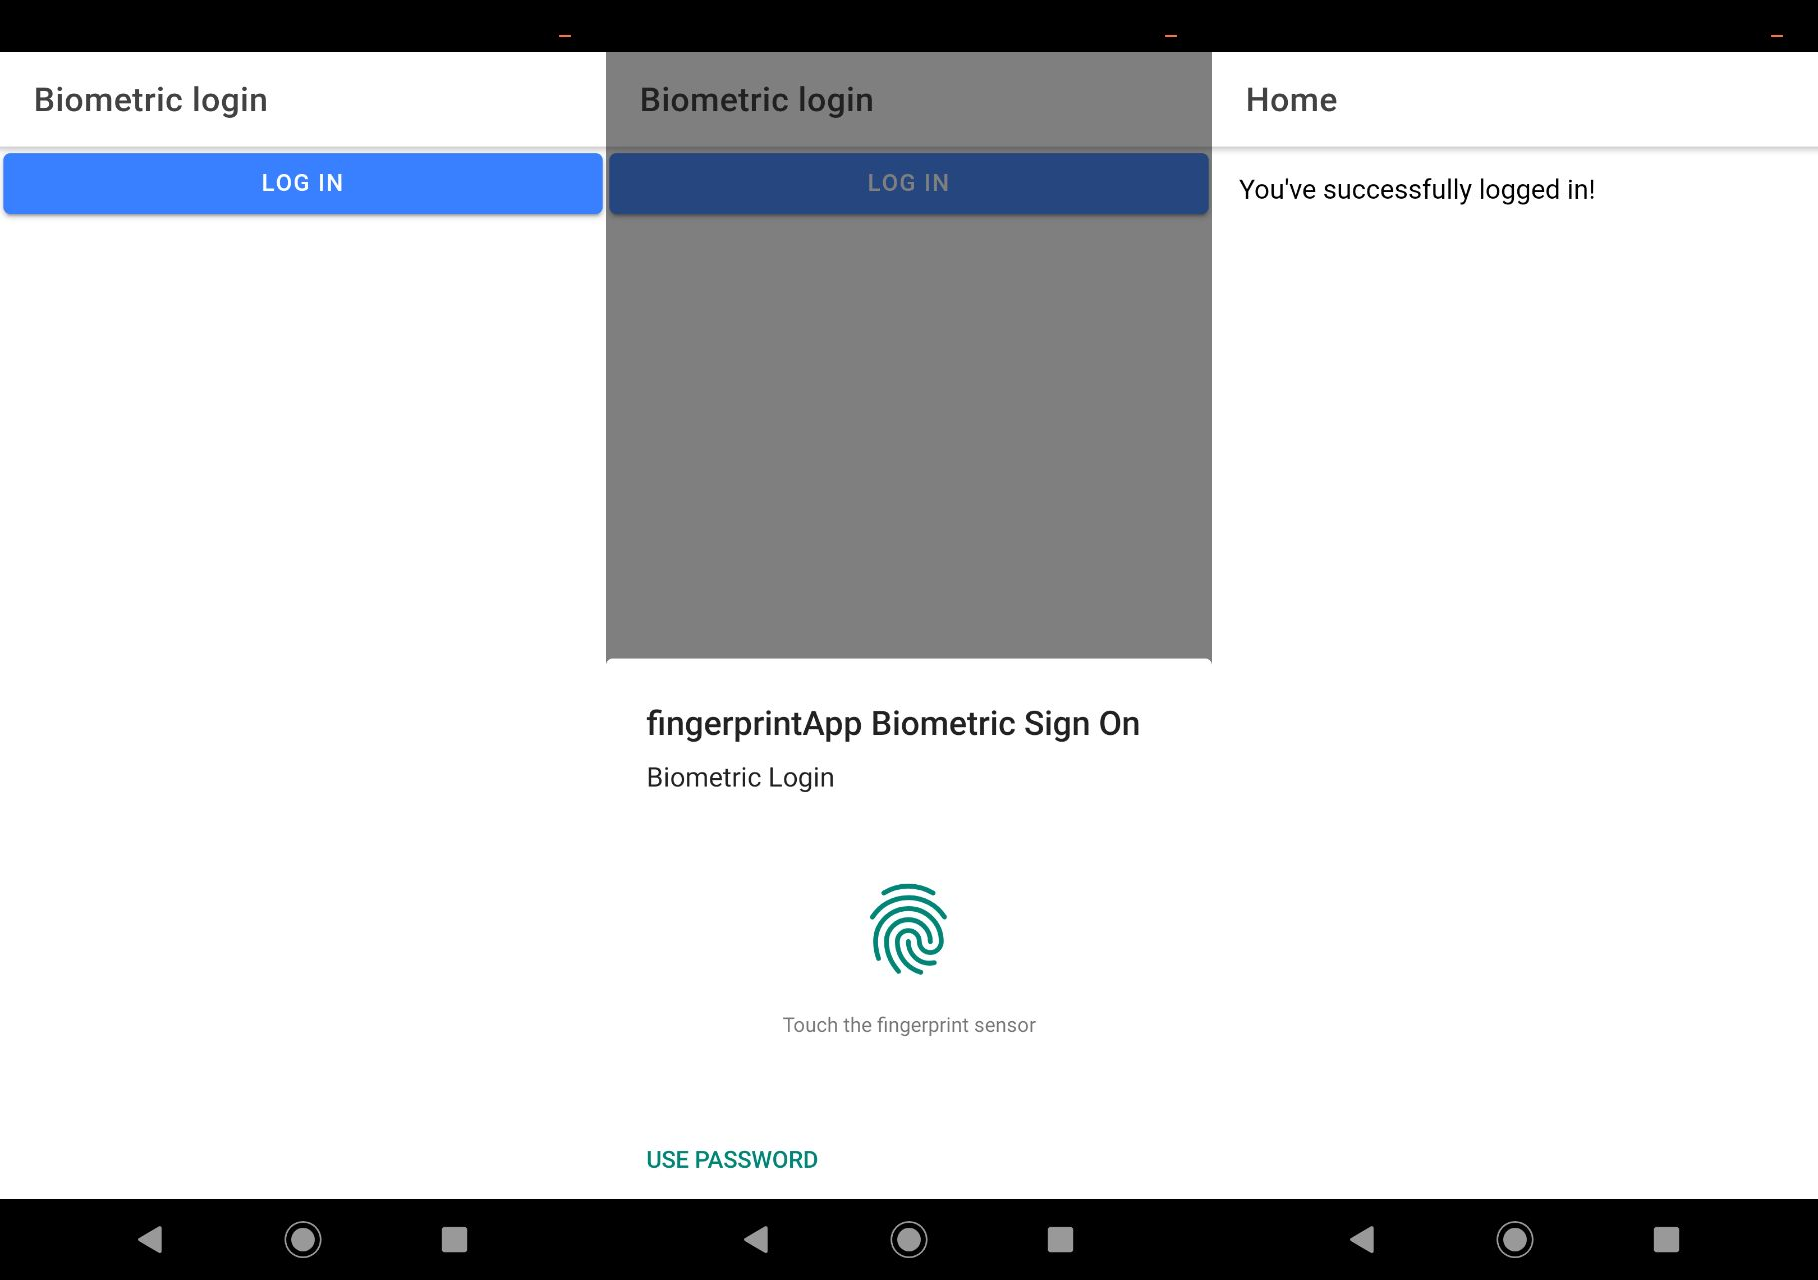 Successful authentication in an Android device